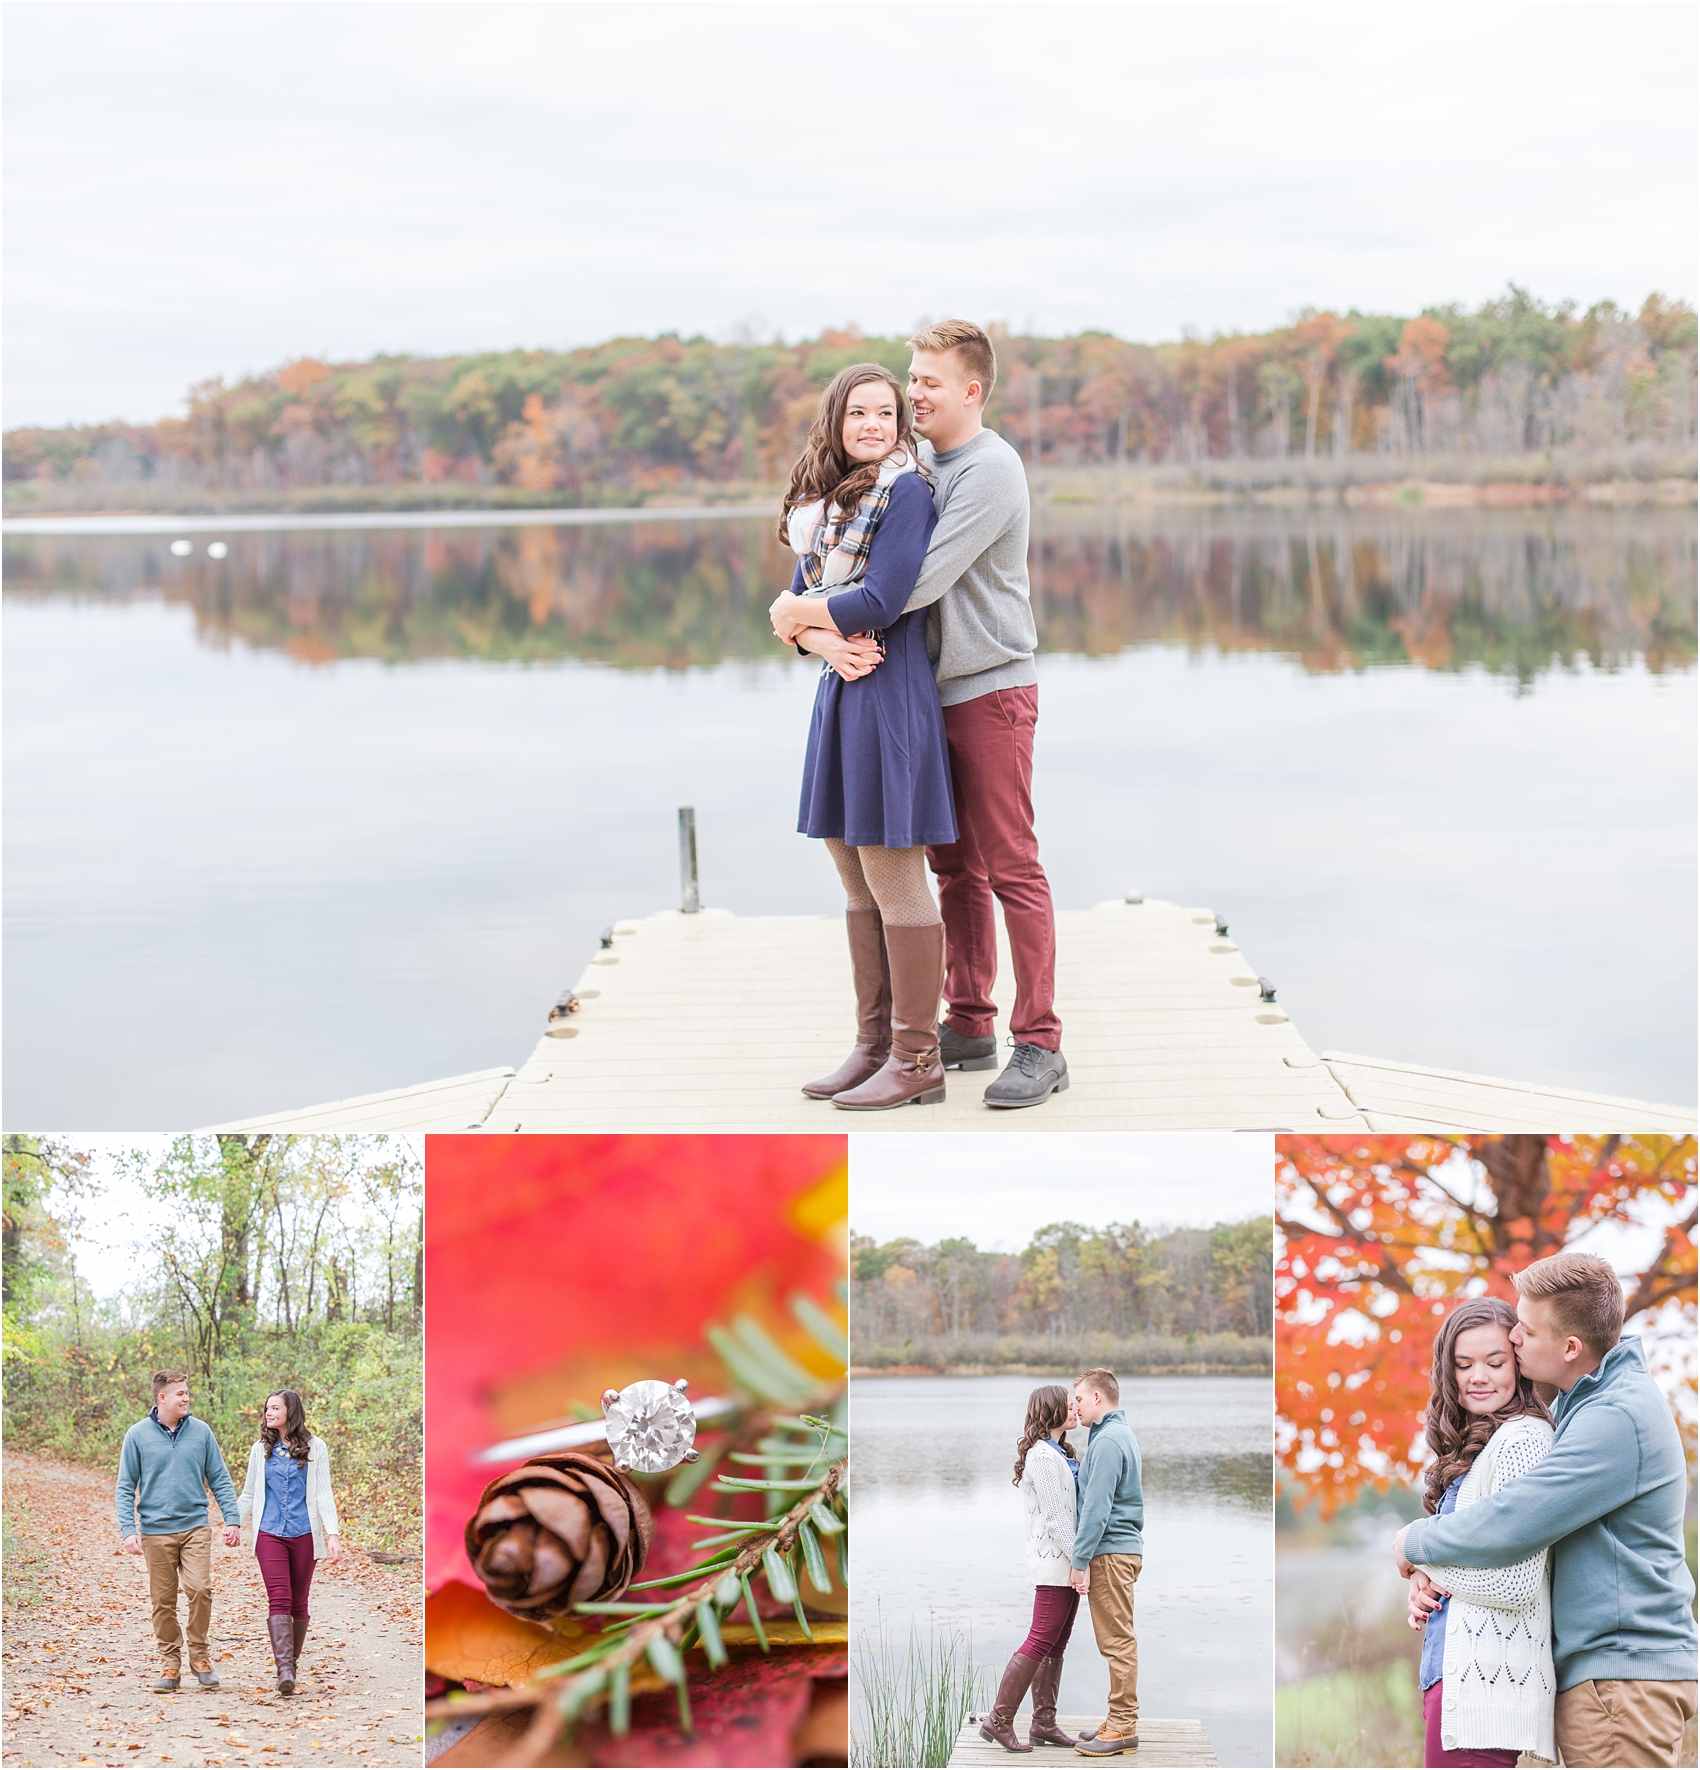 colorful-fall-engagement-photos-at-the-lake-at-huron-meadows-metropark-in-brighton-michigan-by-courtney-carolyn-photography_0036.jpg